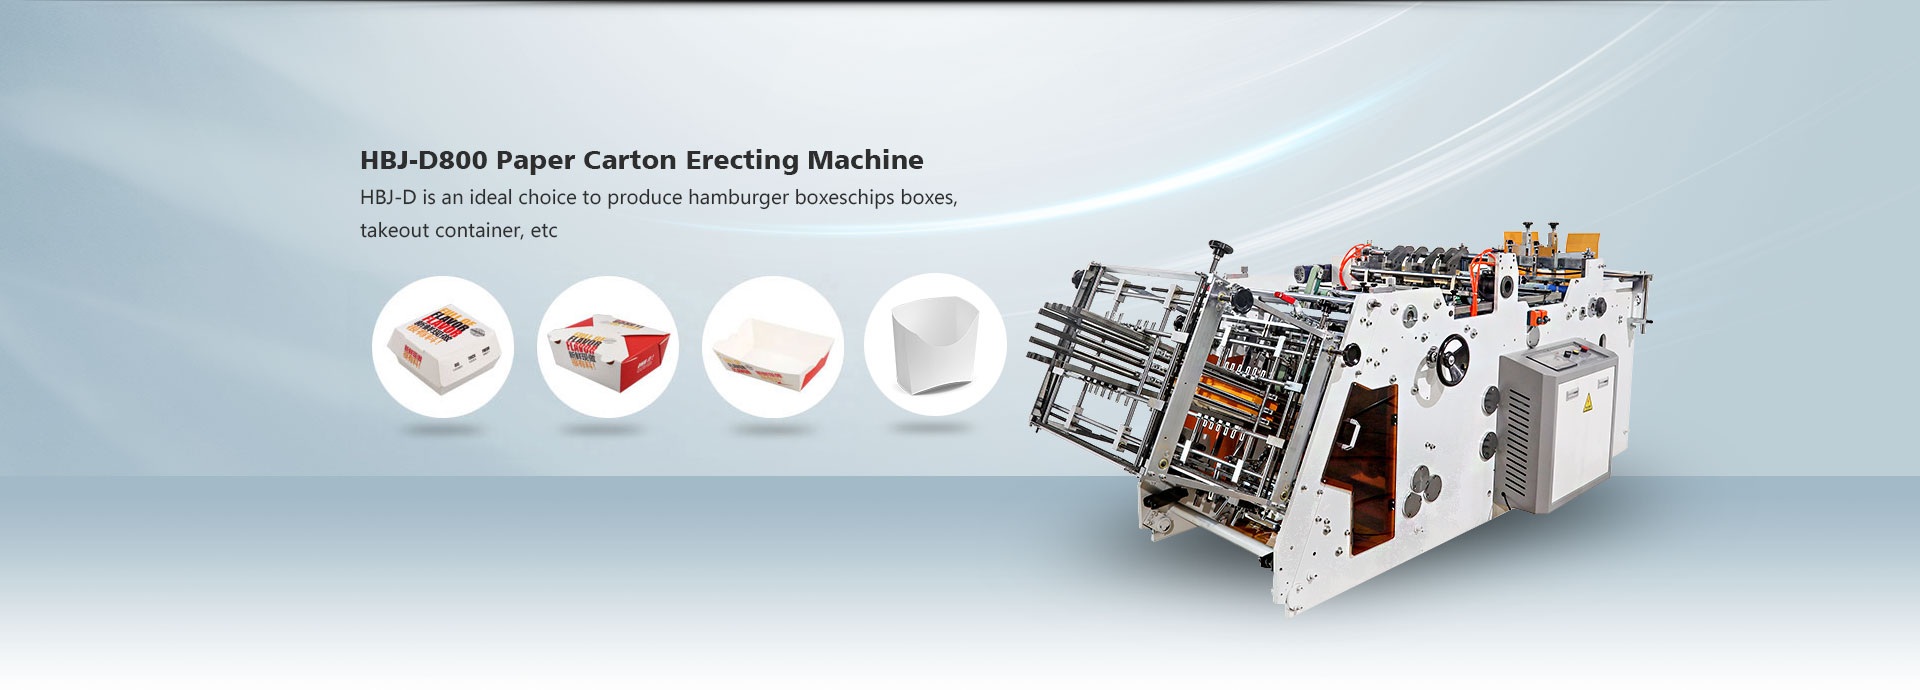 paper carton erecting machine